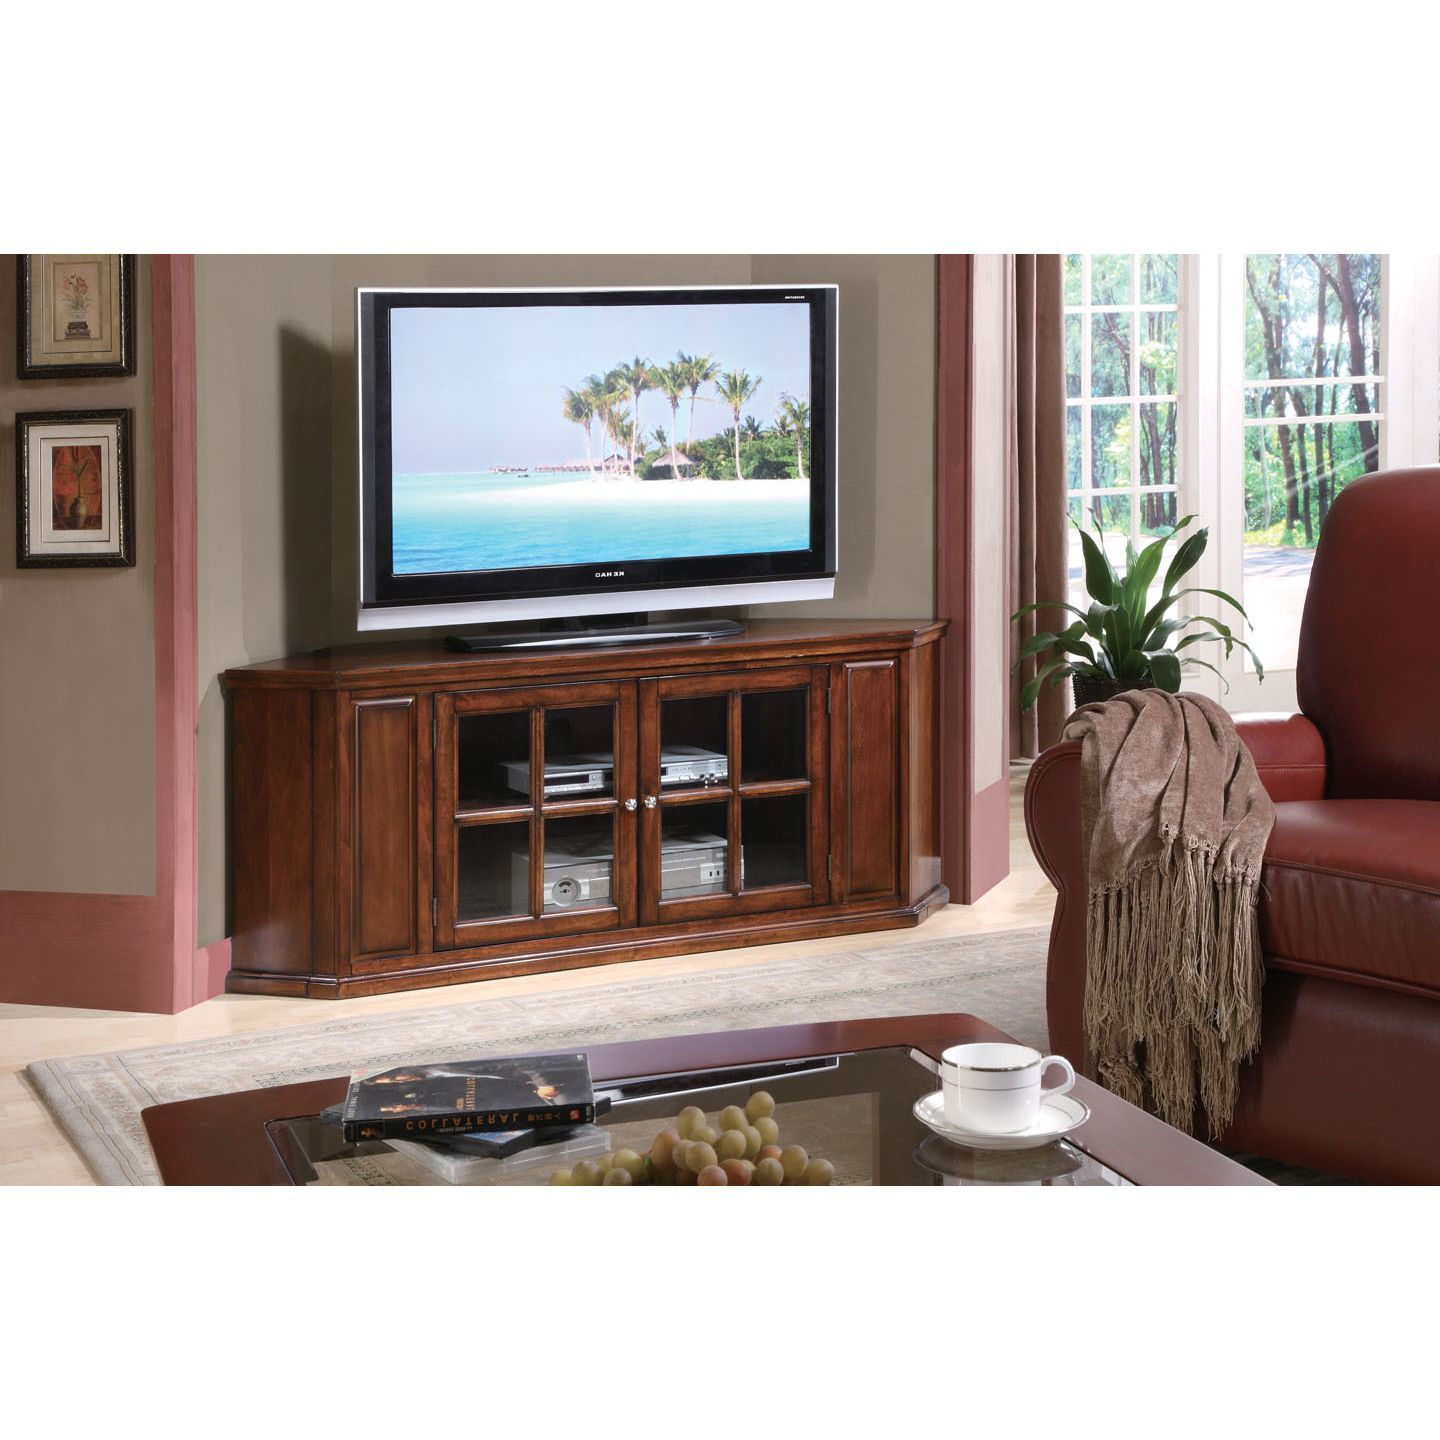 Acme Malka Corner Tv Stand, Oak (corner Tv Stand), Brown (View 9 of 20)